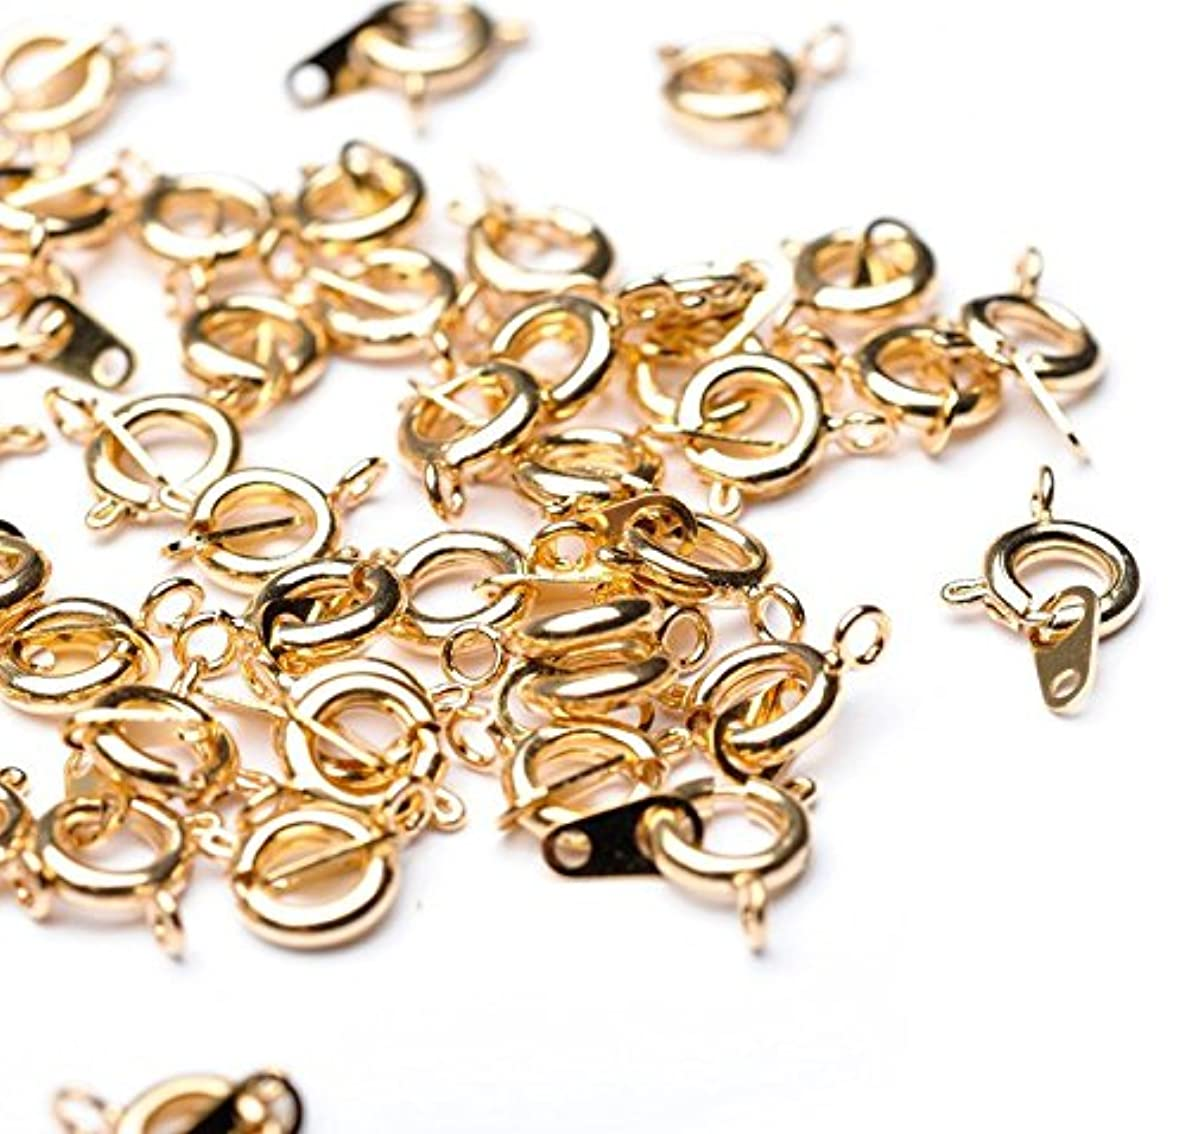 Beads Unlimited 6 mm Gold Plated Metal Small Bolt Ring, Pack of 50